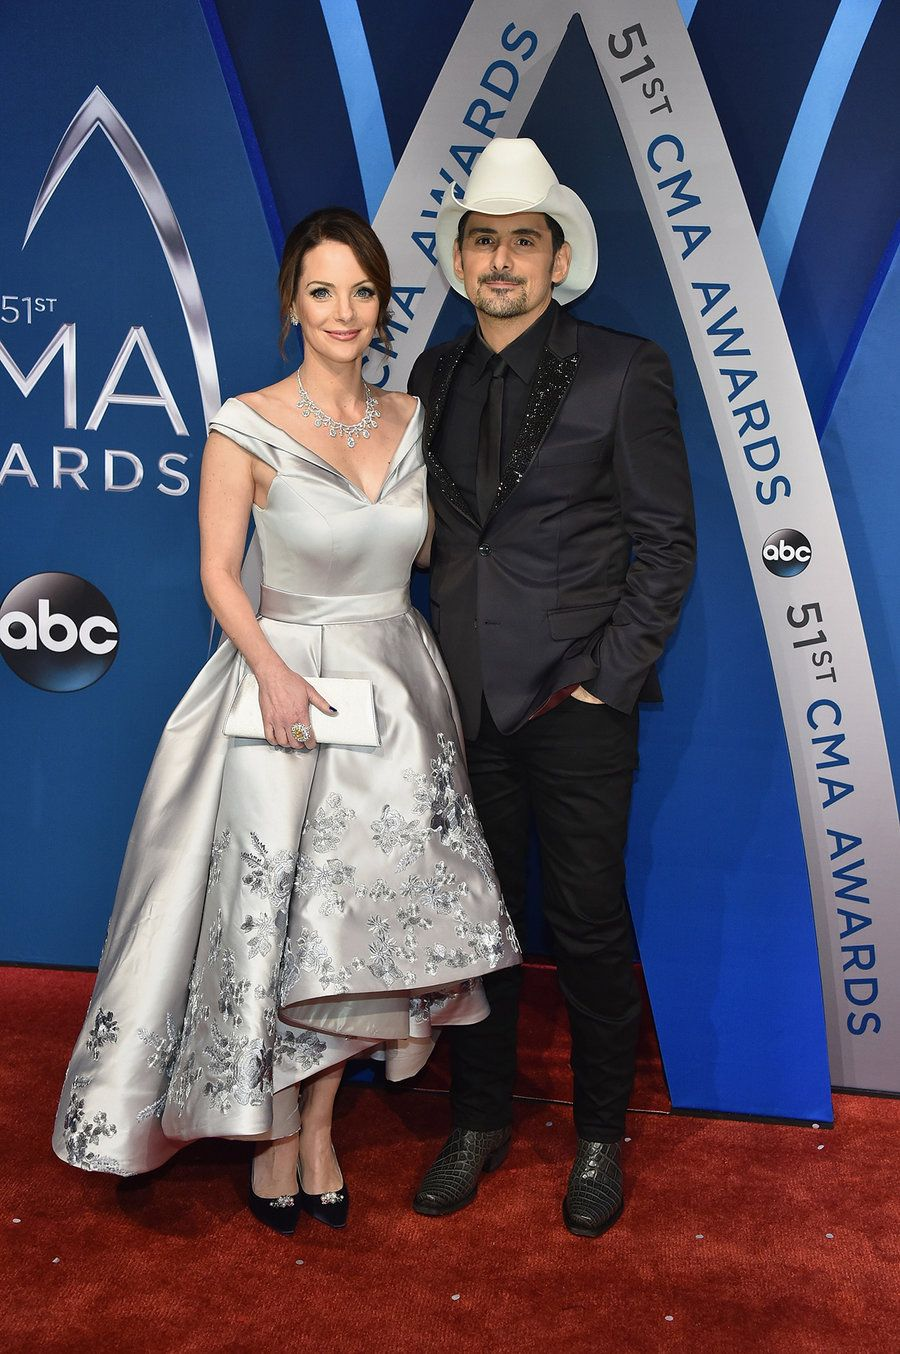 2017 CMA Awards Red Carpet Photos Billboard Cma